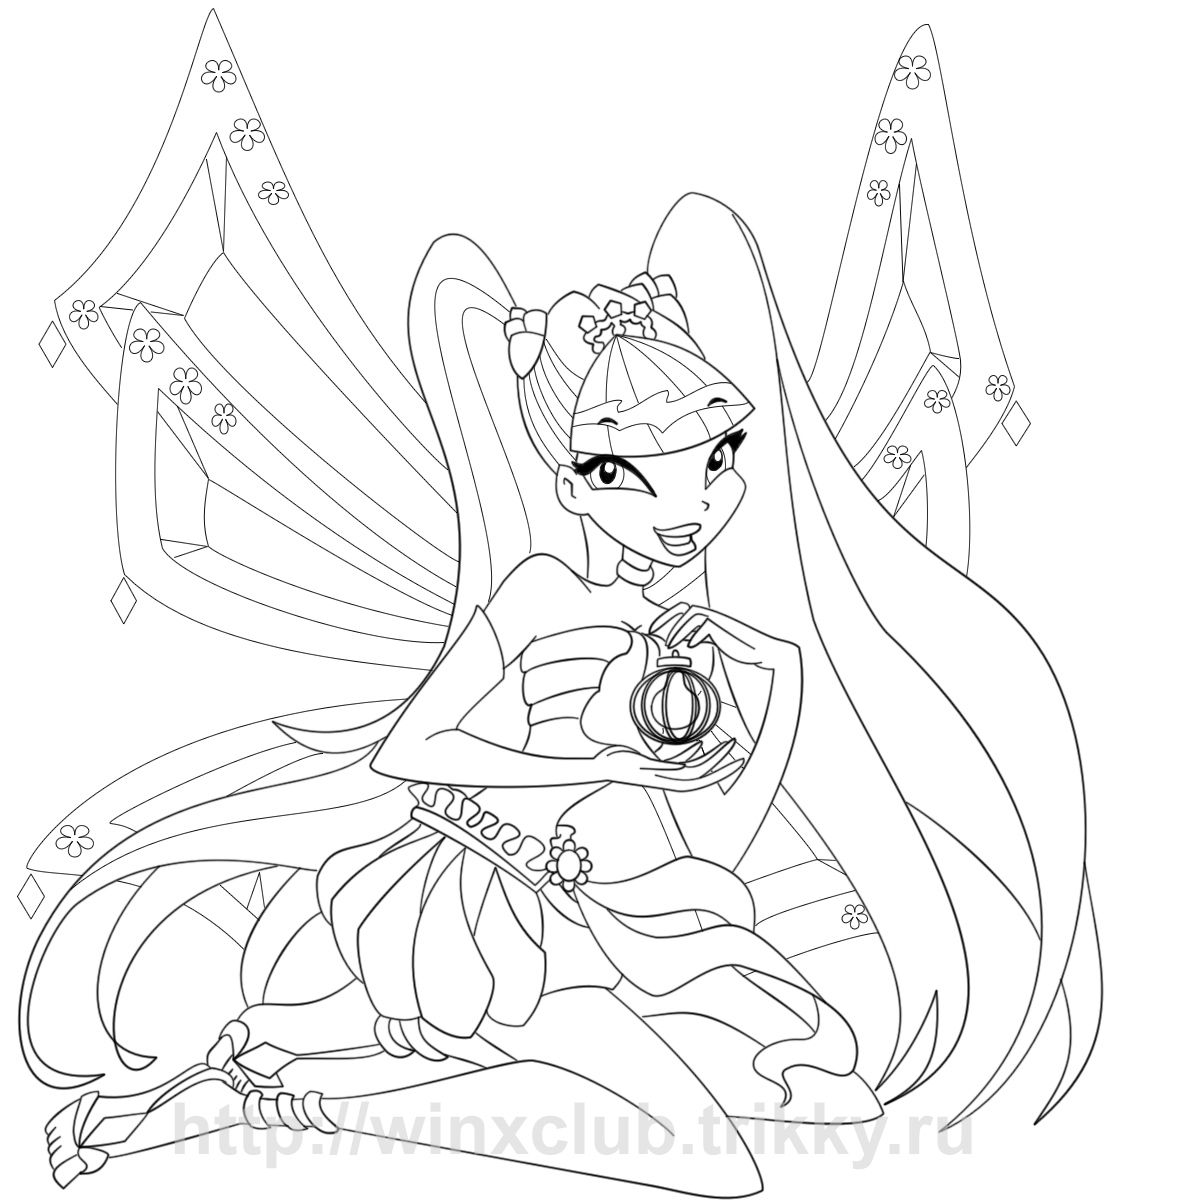 Winx club musa flyrix coloring pages coloriage - Cartoons Winx Club Coloring Pages Printable Voor Kinderen 9e99be1b60fea5b0959a386b4451c42f